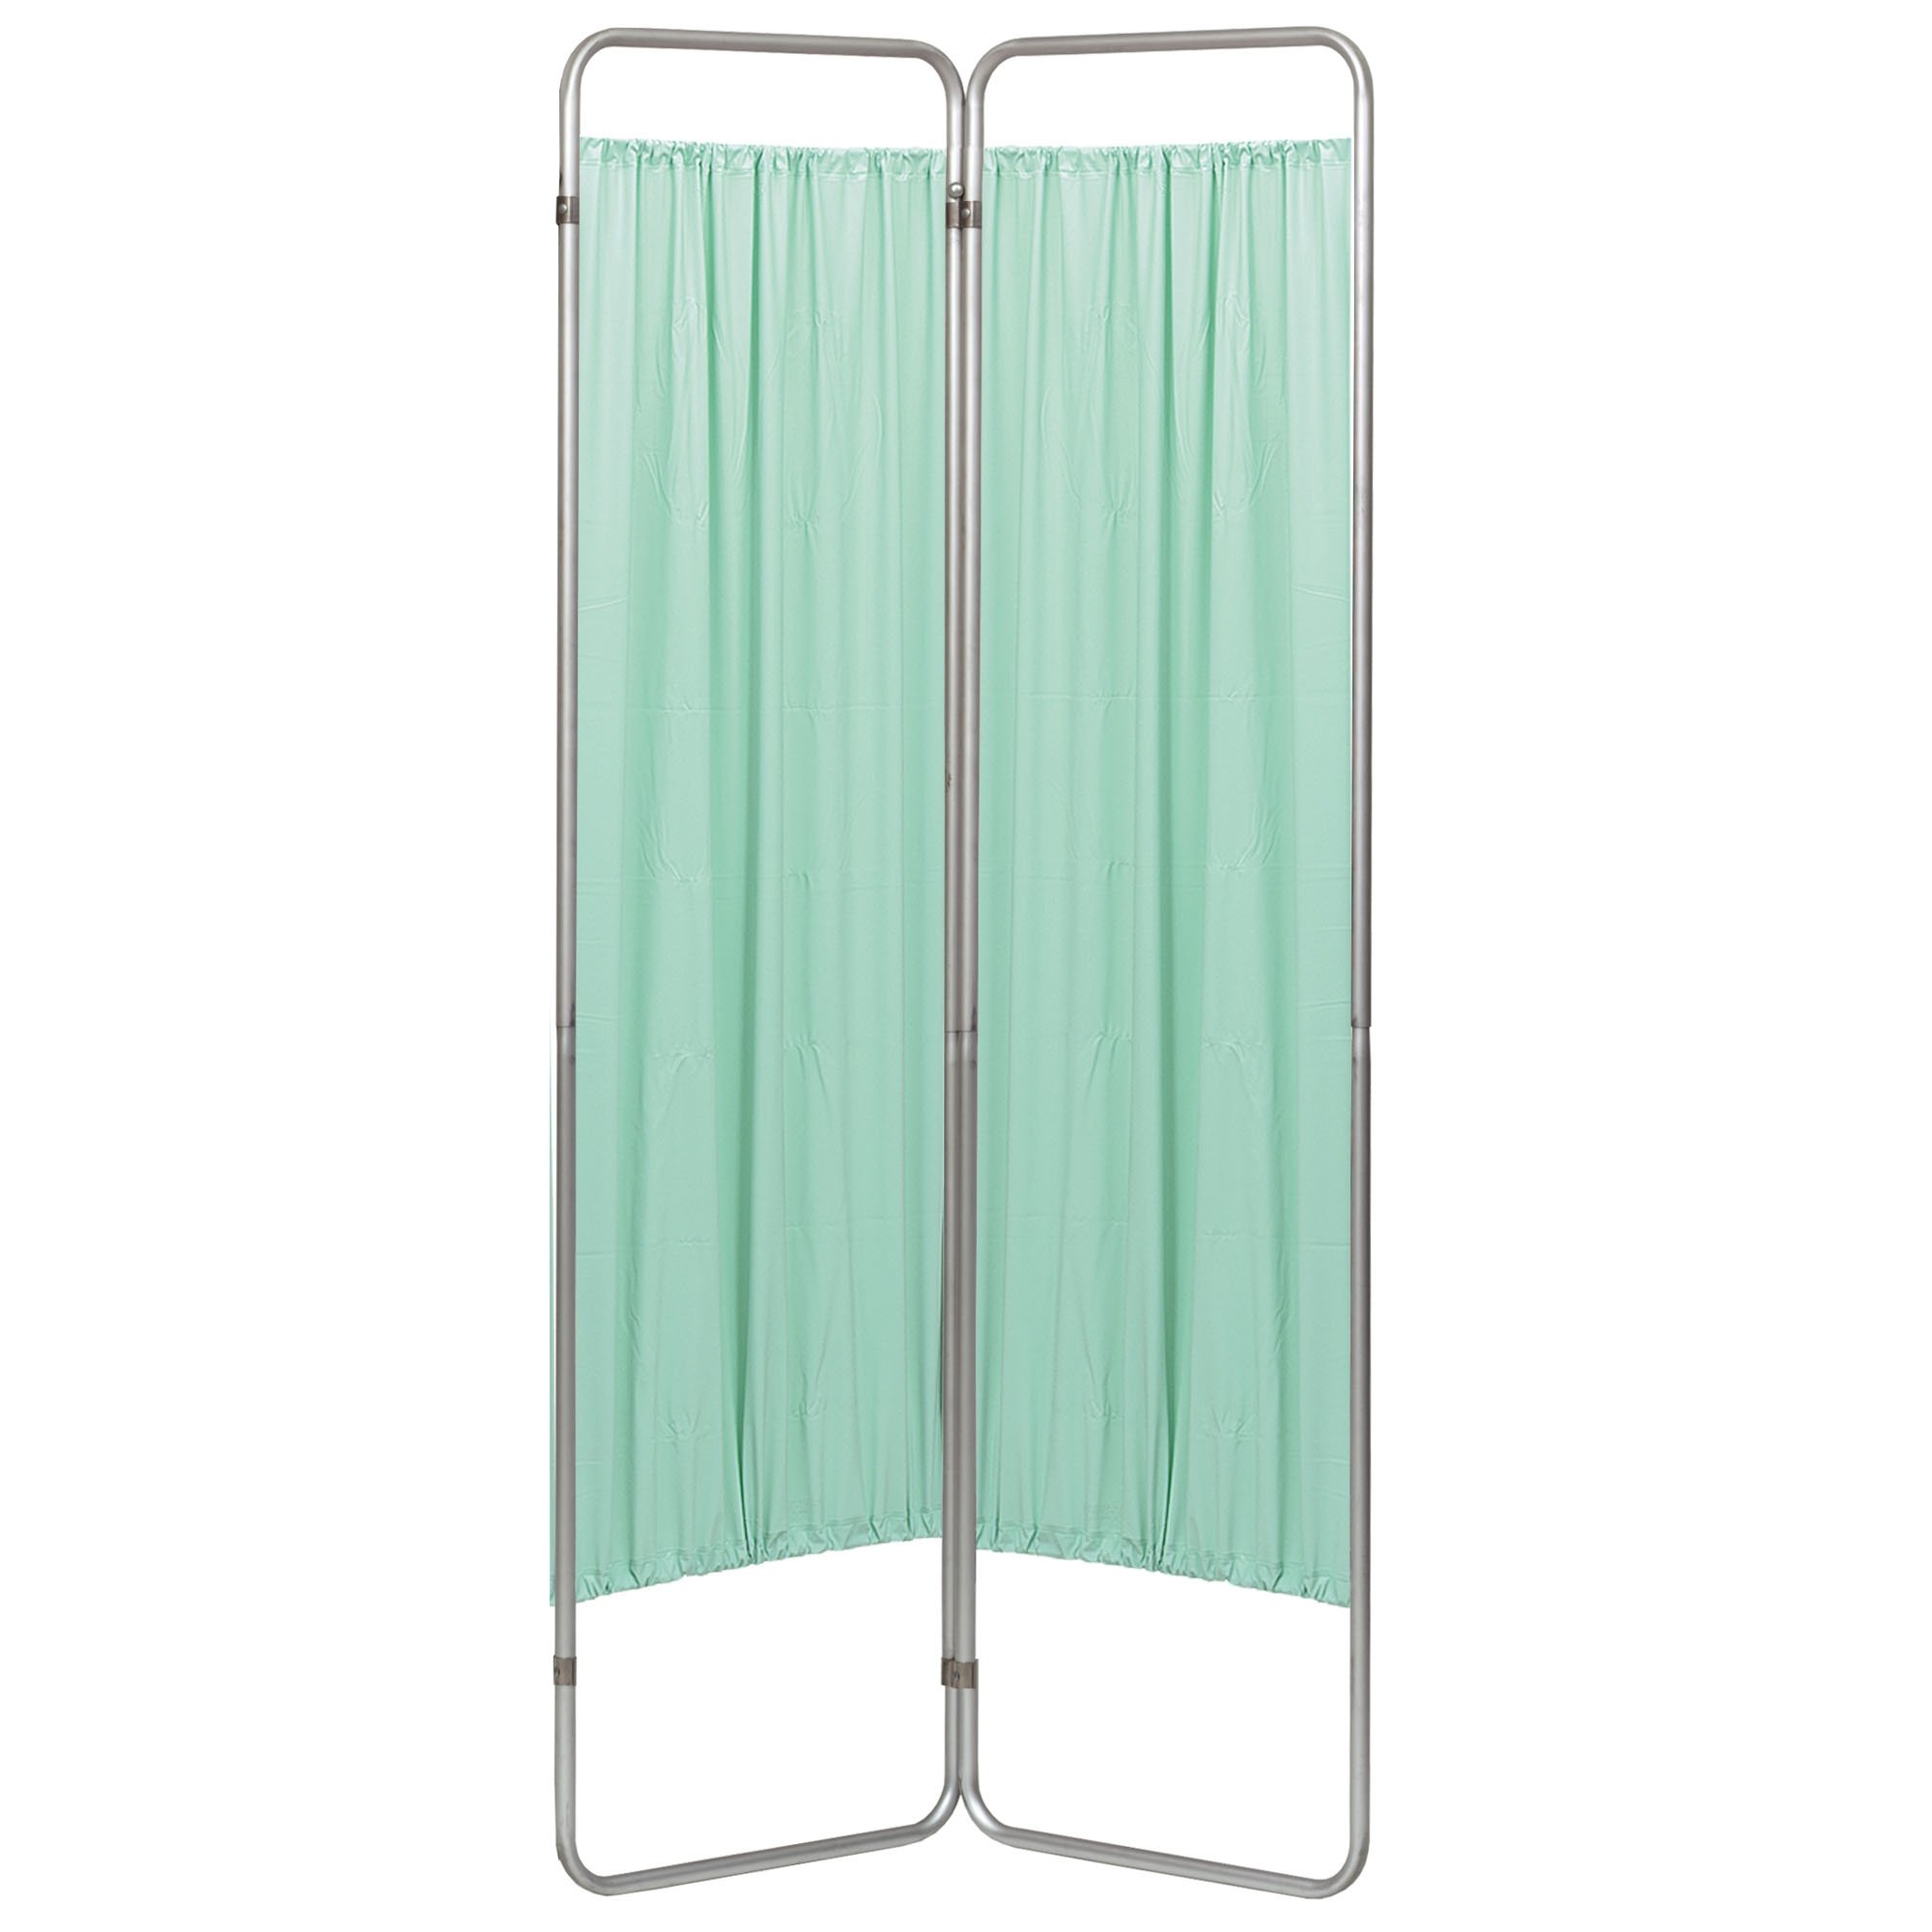 Economy 2 Section Folding Privacy Screen - Green Vinyl Screen Panel